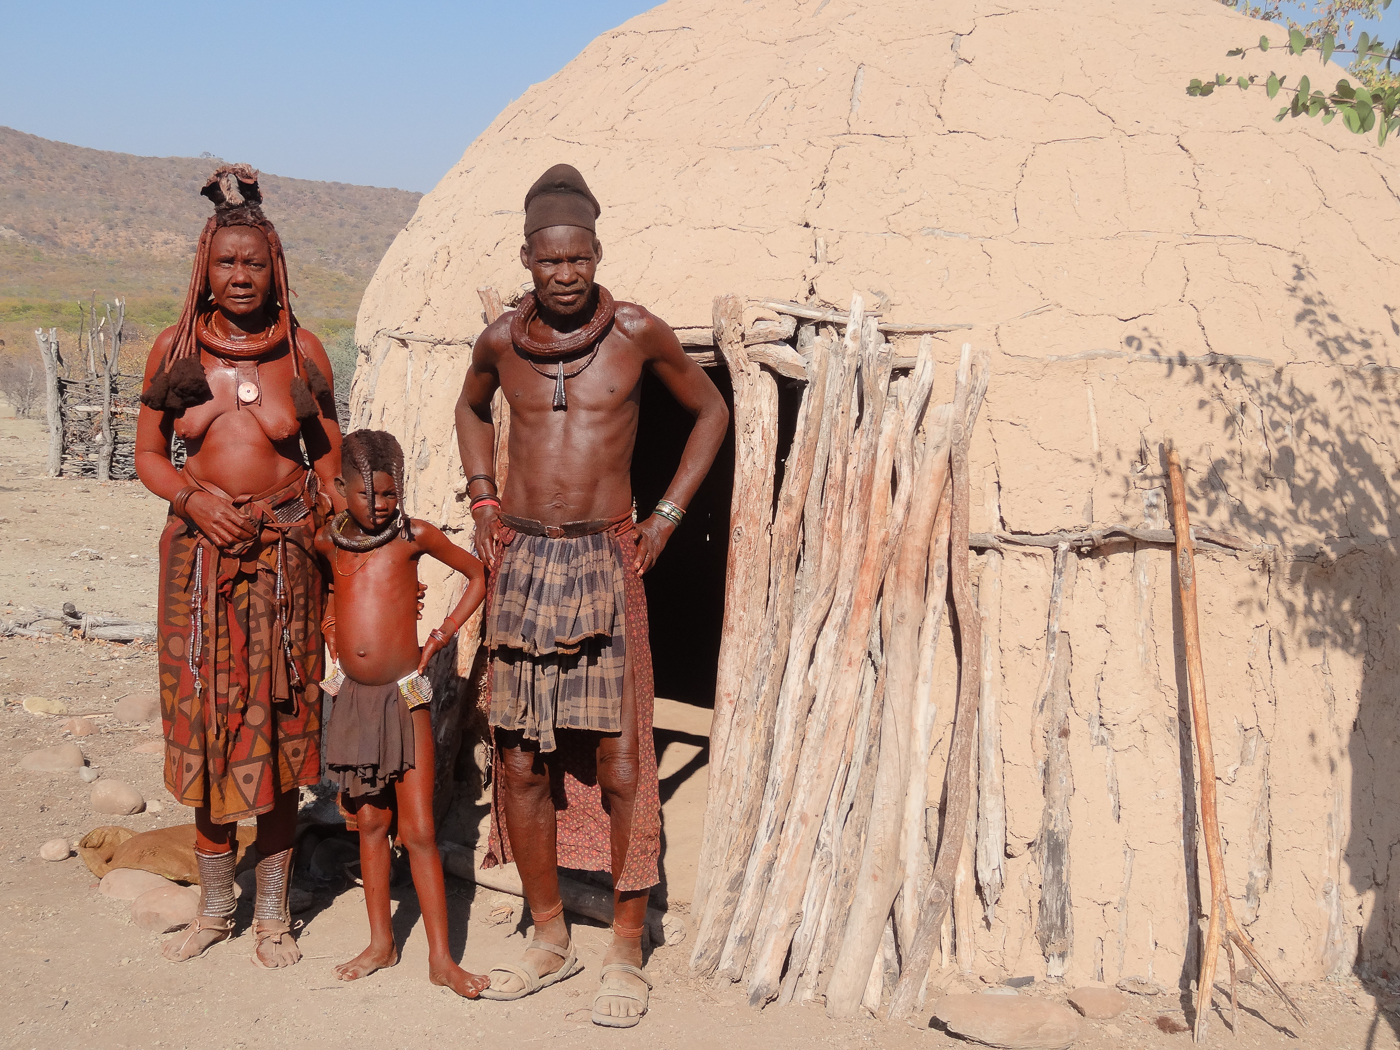 namibia, himba, africa, african tribe, namibian tribe, himba culture, himba in danger, ethnic groups in africa, ethnic groups disappear, himba people, travel, people, himba women, himba beauty, himba nude, topless himba, topless women, himba dance